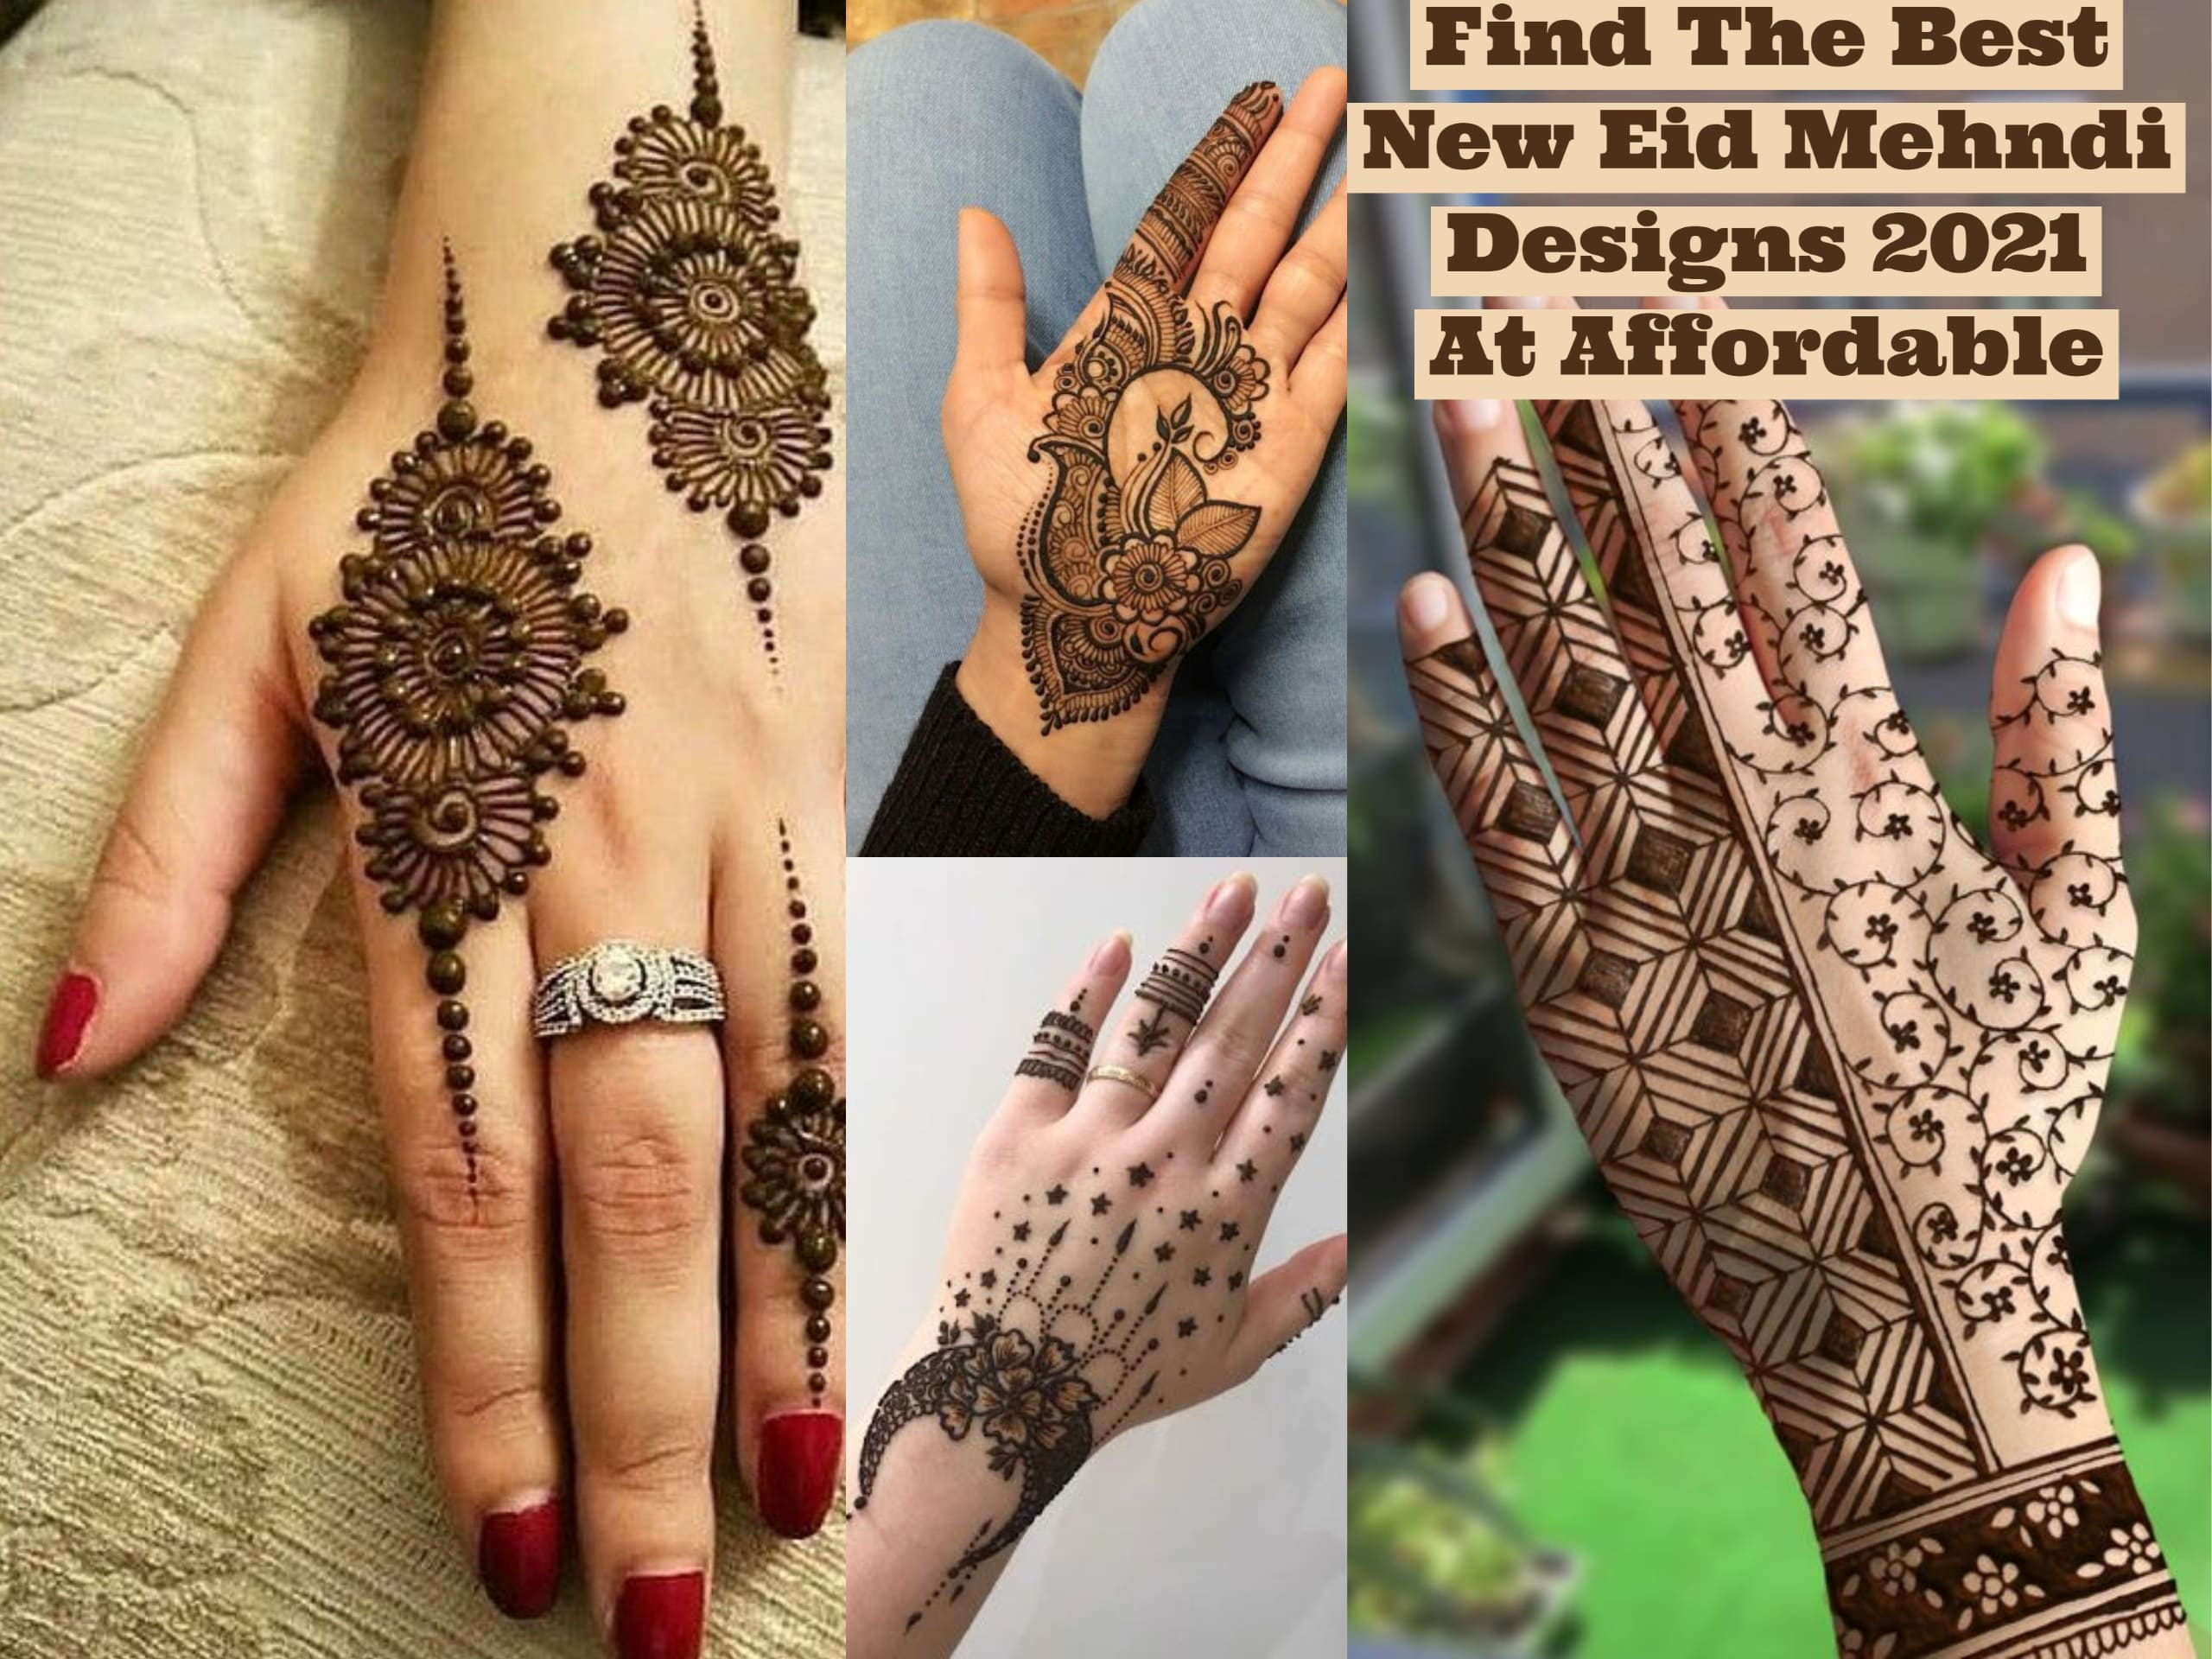 Find The Best New Eid Mehndi Designs 2021 At Affordable